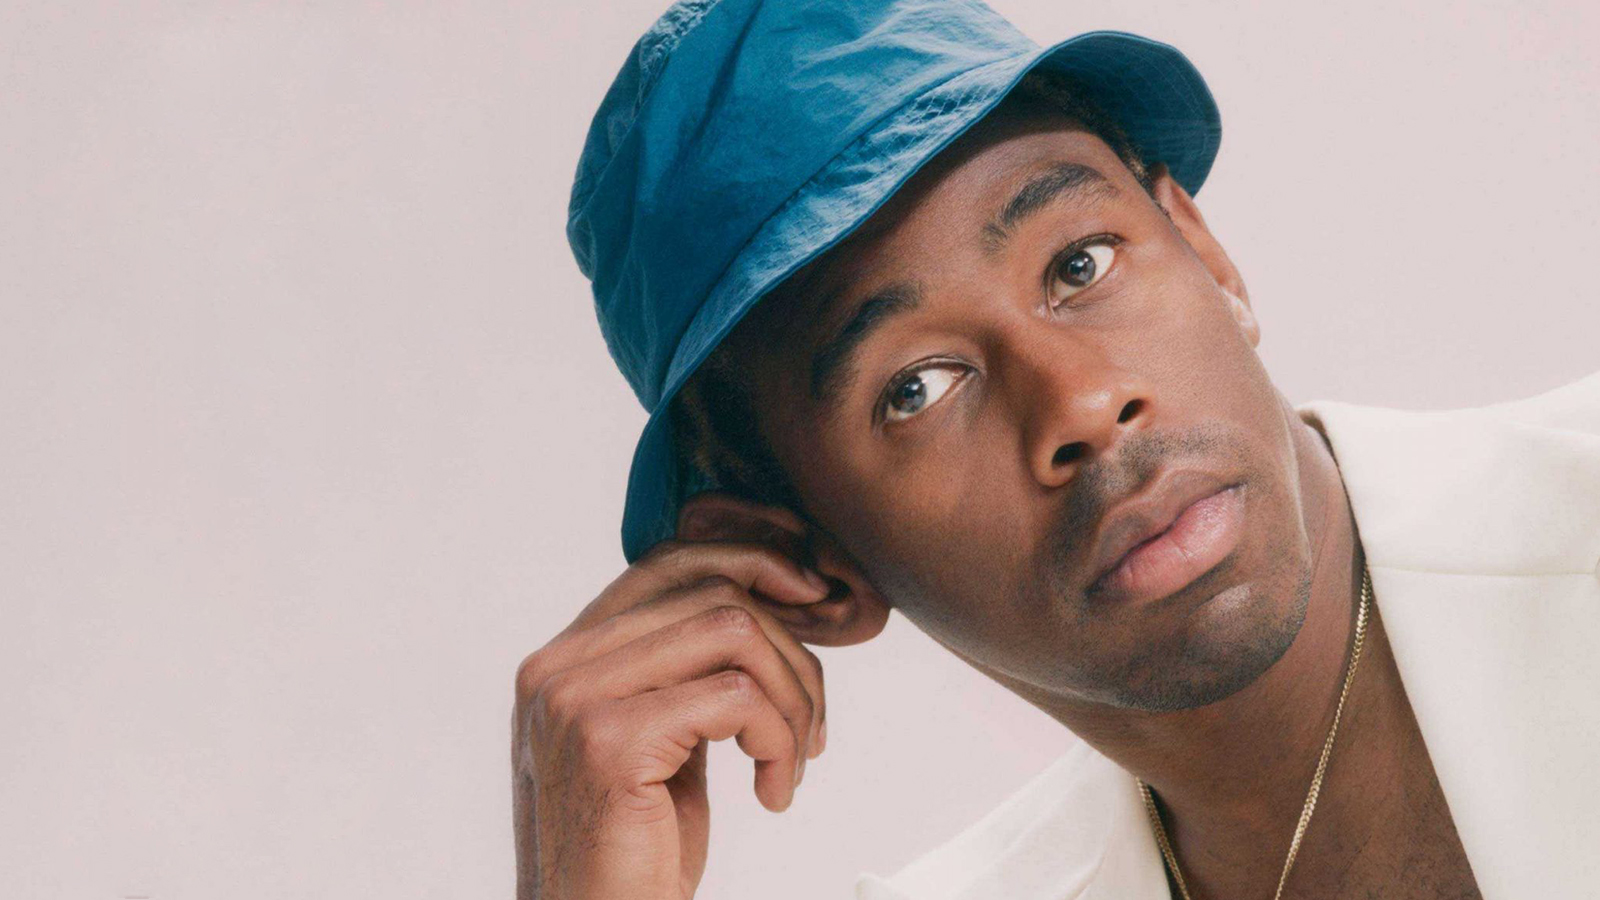 tyler the creator tamale lyrics genius lyrics - 929×929